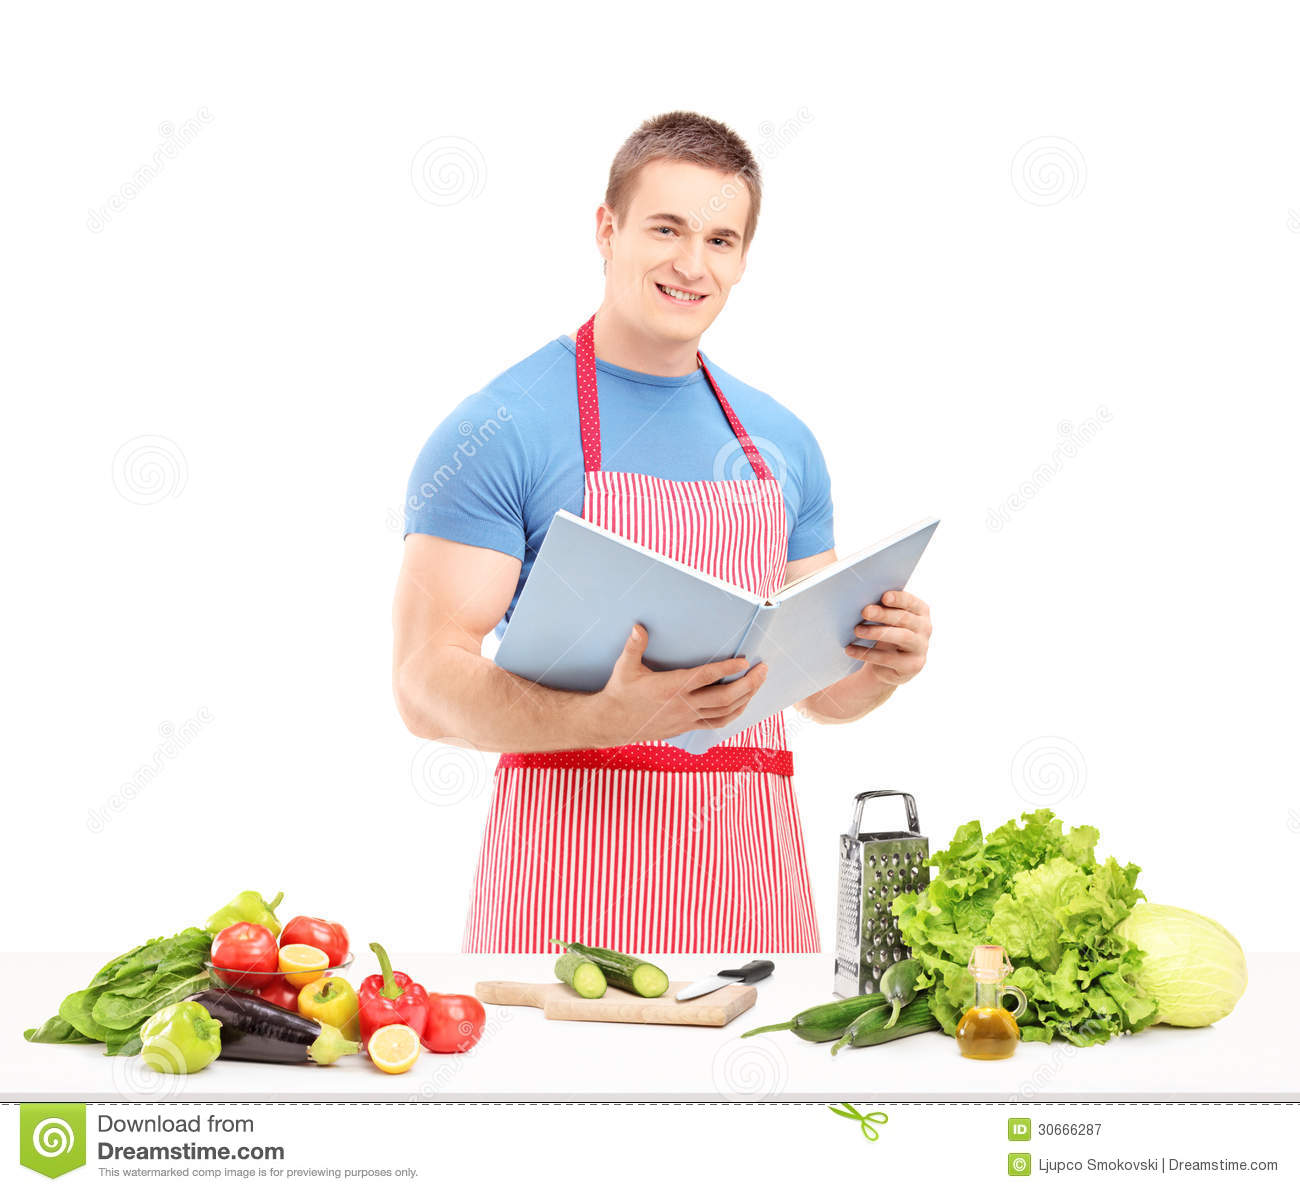 a male chef reading a cookbook while preparing a salad royalty free stock photography image. Black Bedroom Furniture Sets. Home Design Ideas